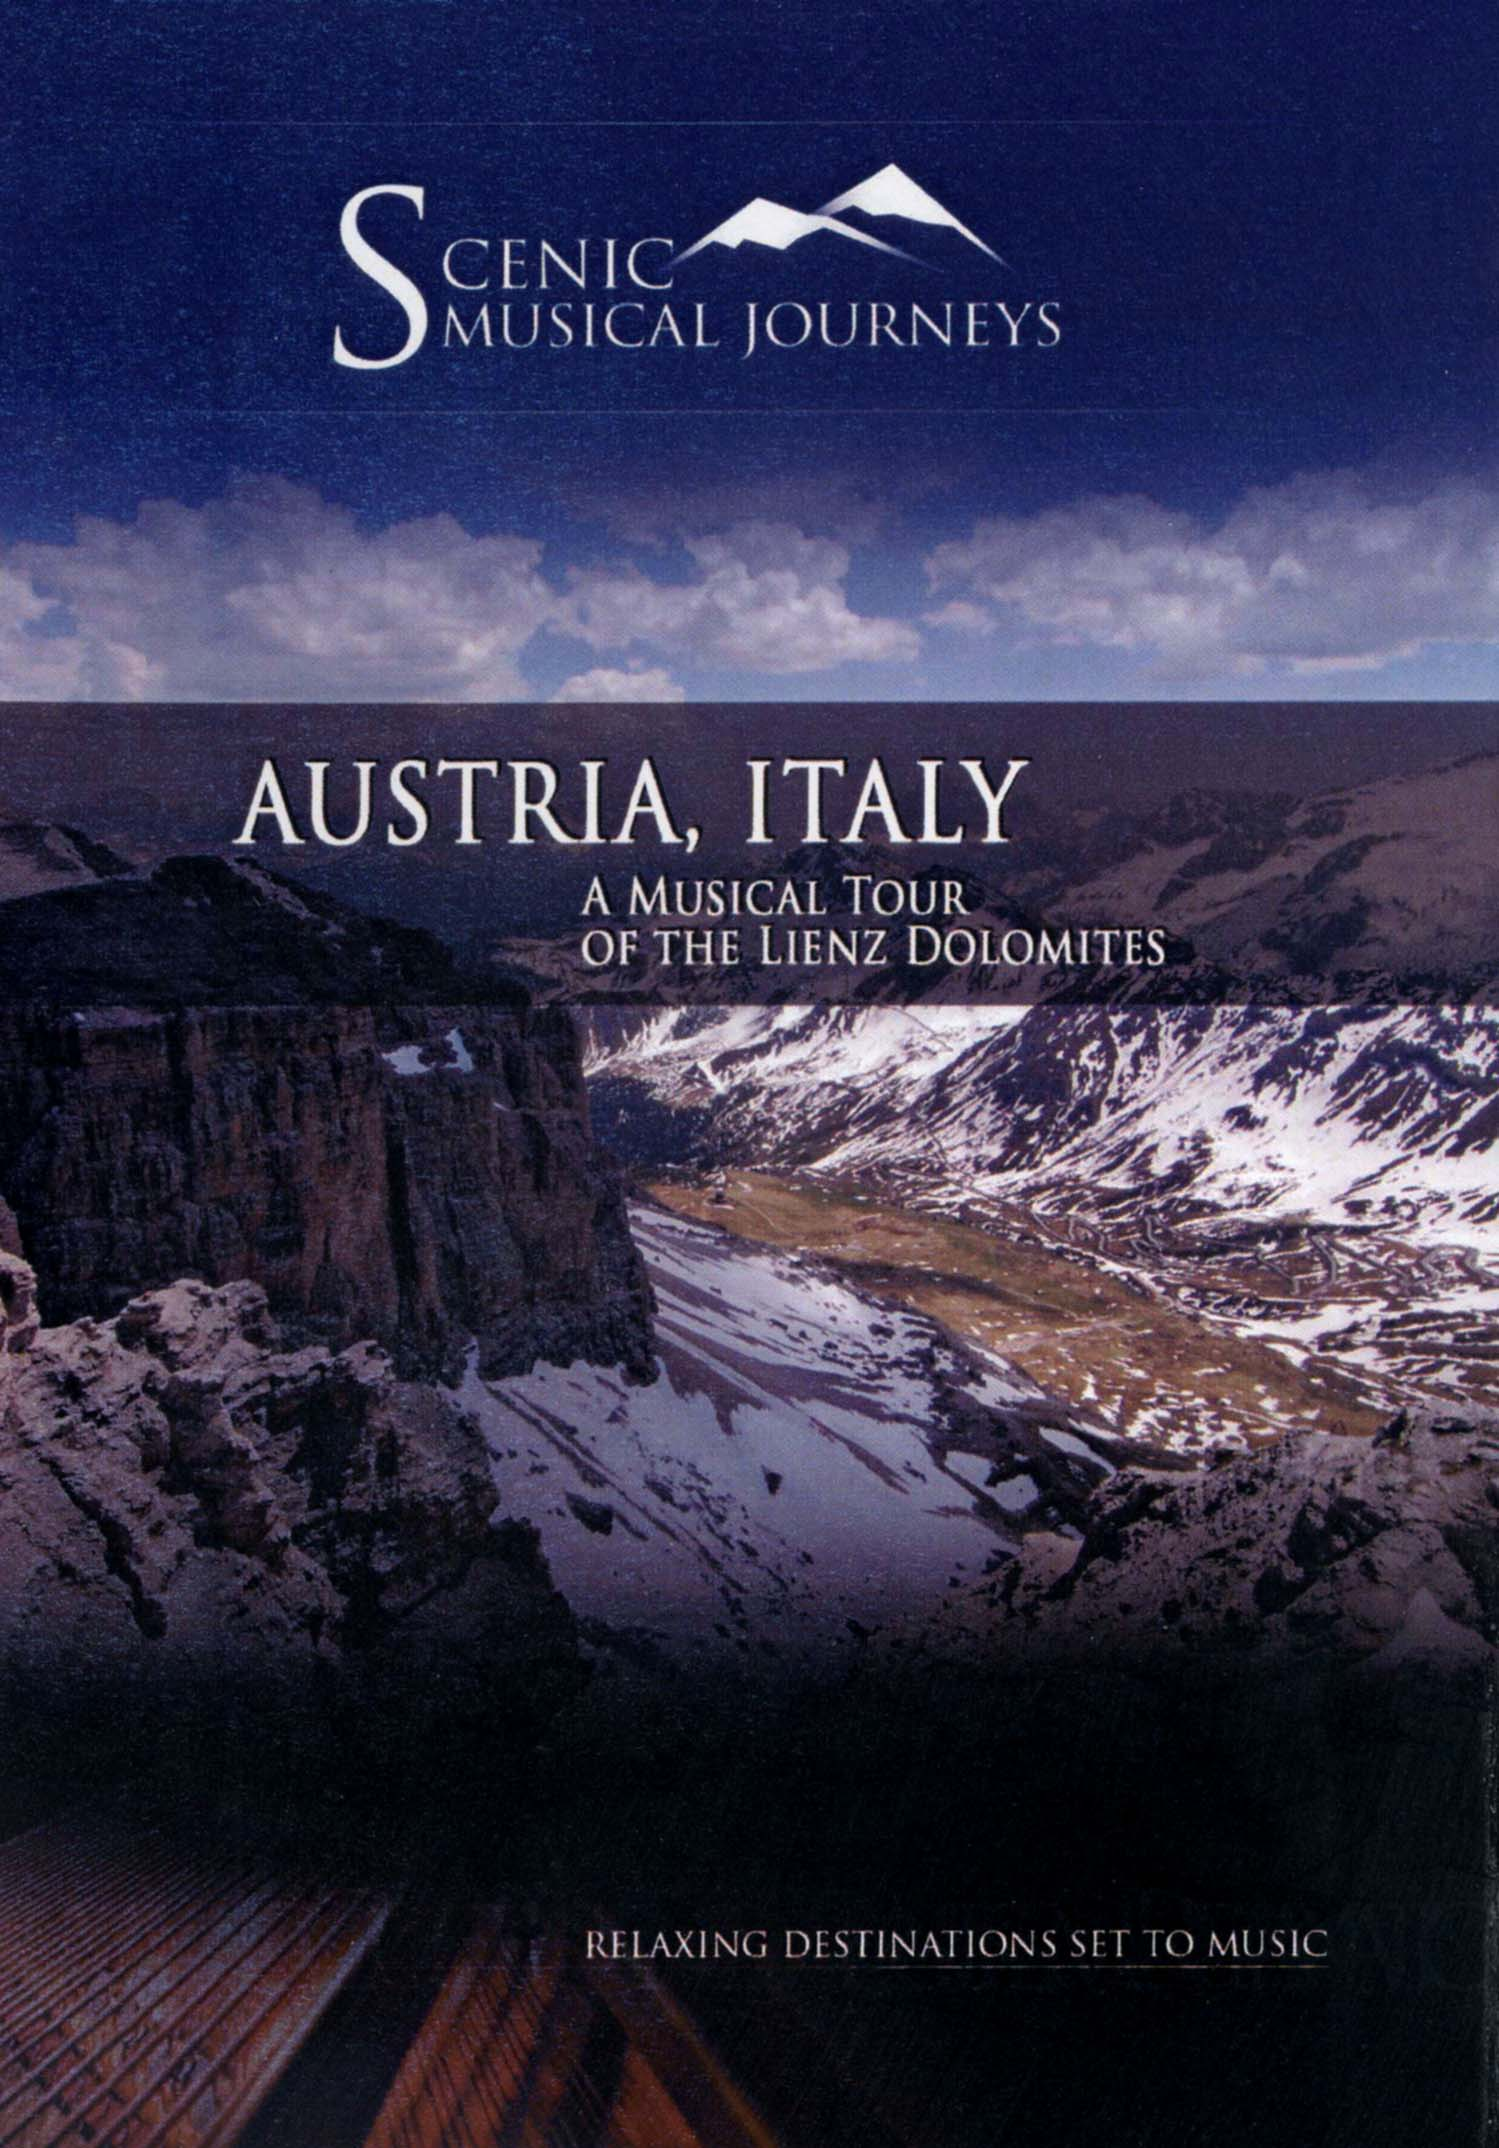 Scenic Musical Journeys: Austria, Italy - A Musical Tour of the Lienz Dolomites